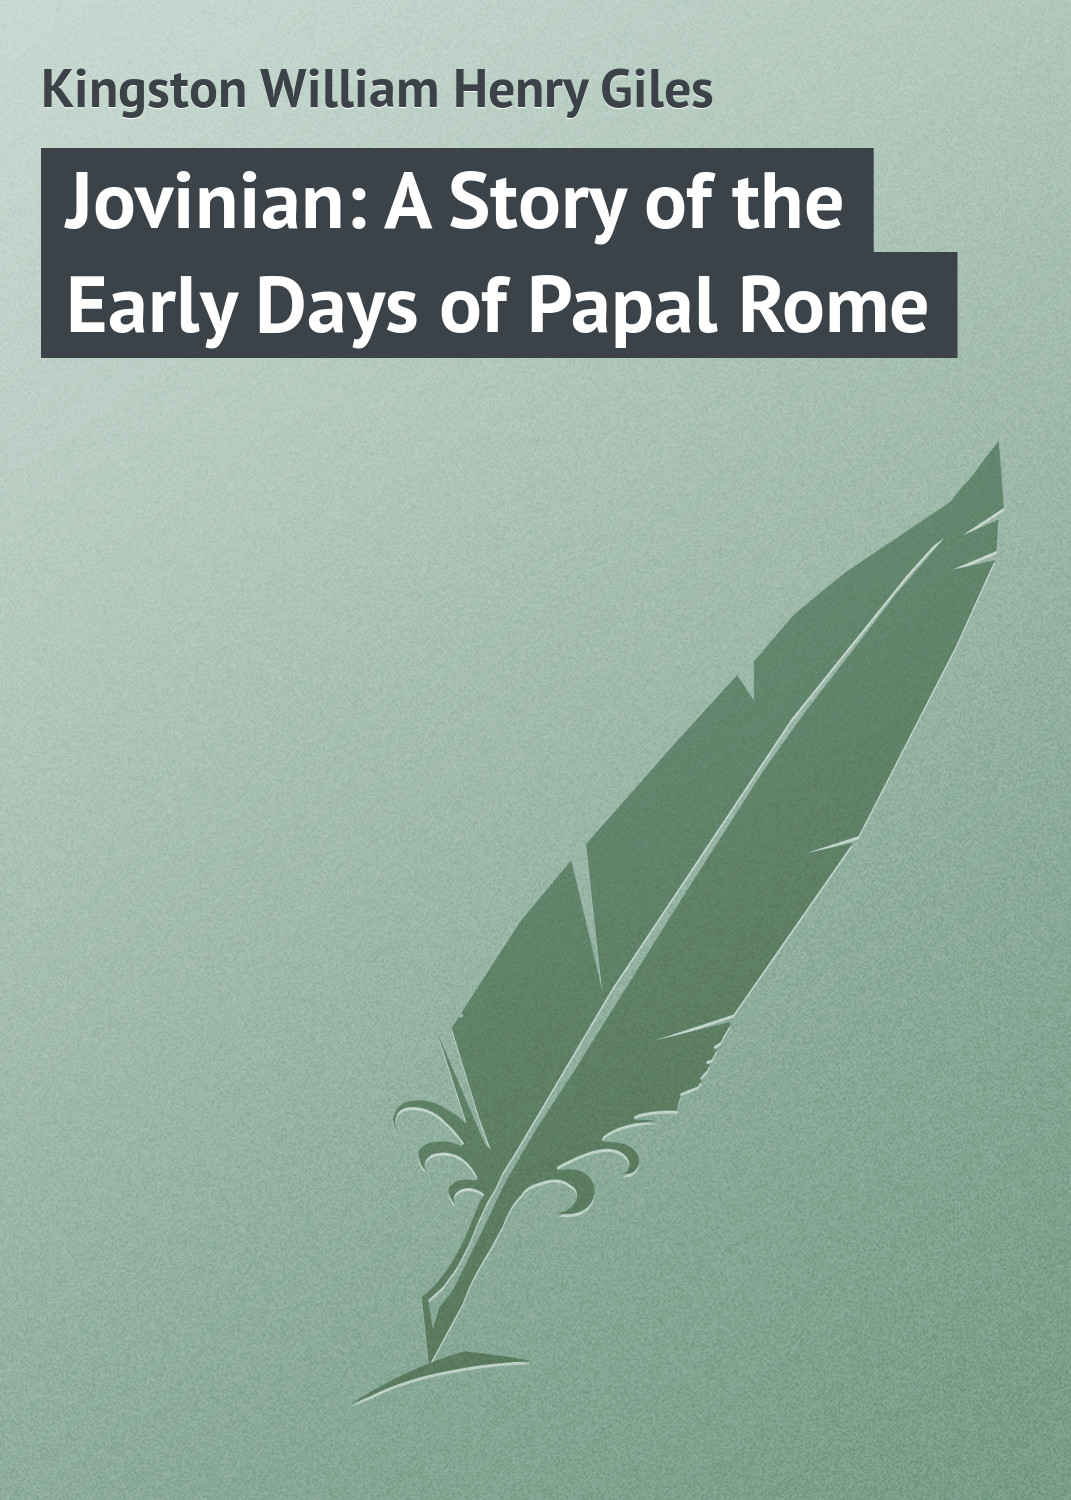 лучшая цена Kingston William Henry Giles Jovinian: A Story of the Early Days of Papal Rome